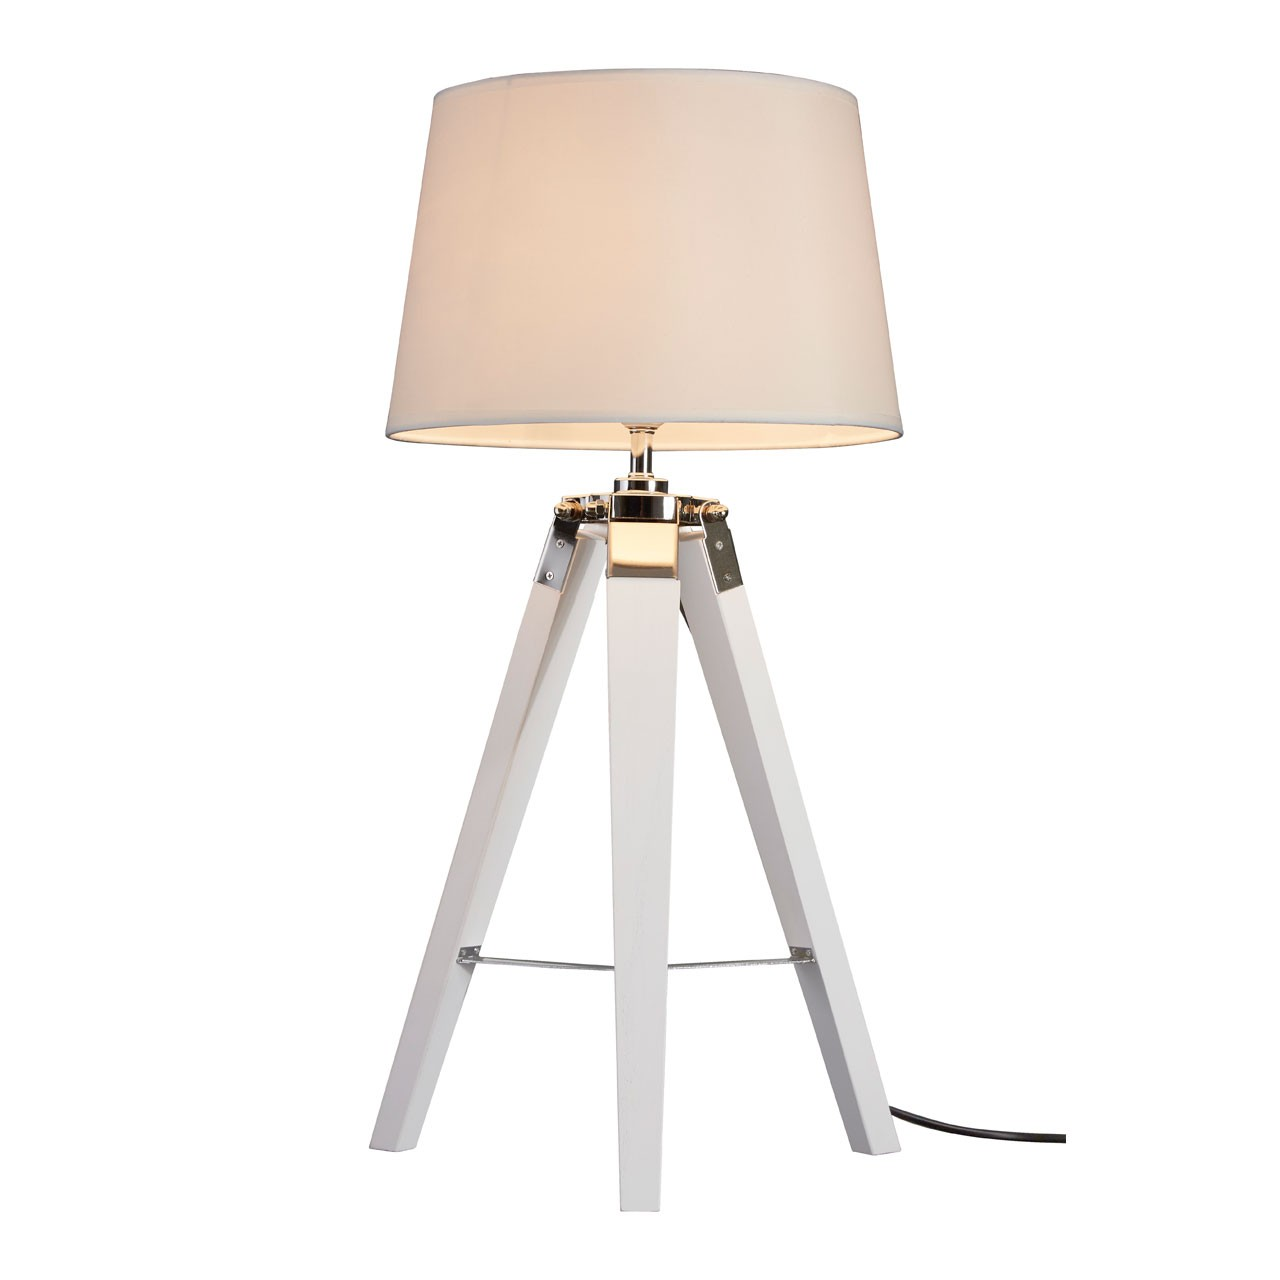 Bailey Tripod Table Lamp Crisp White Finish